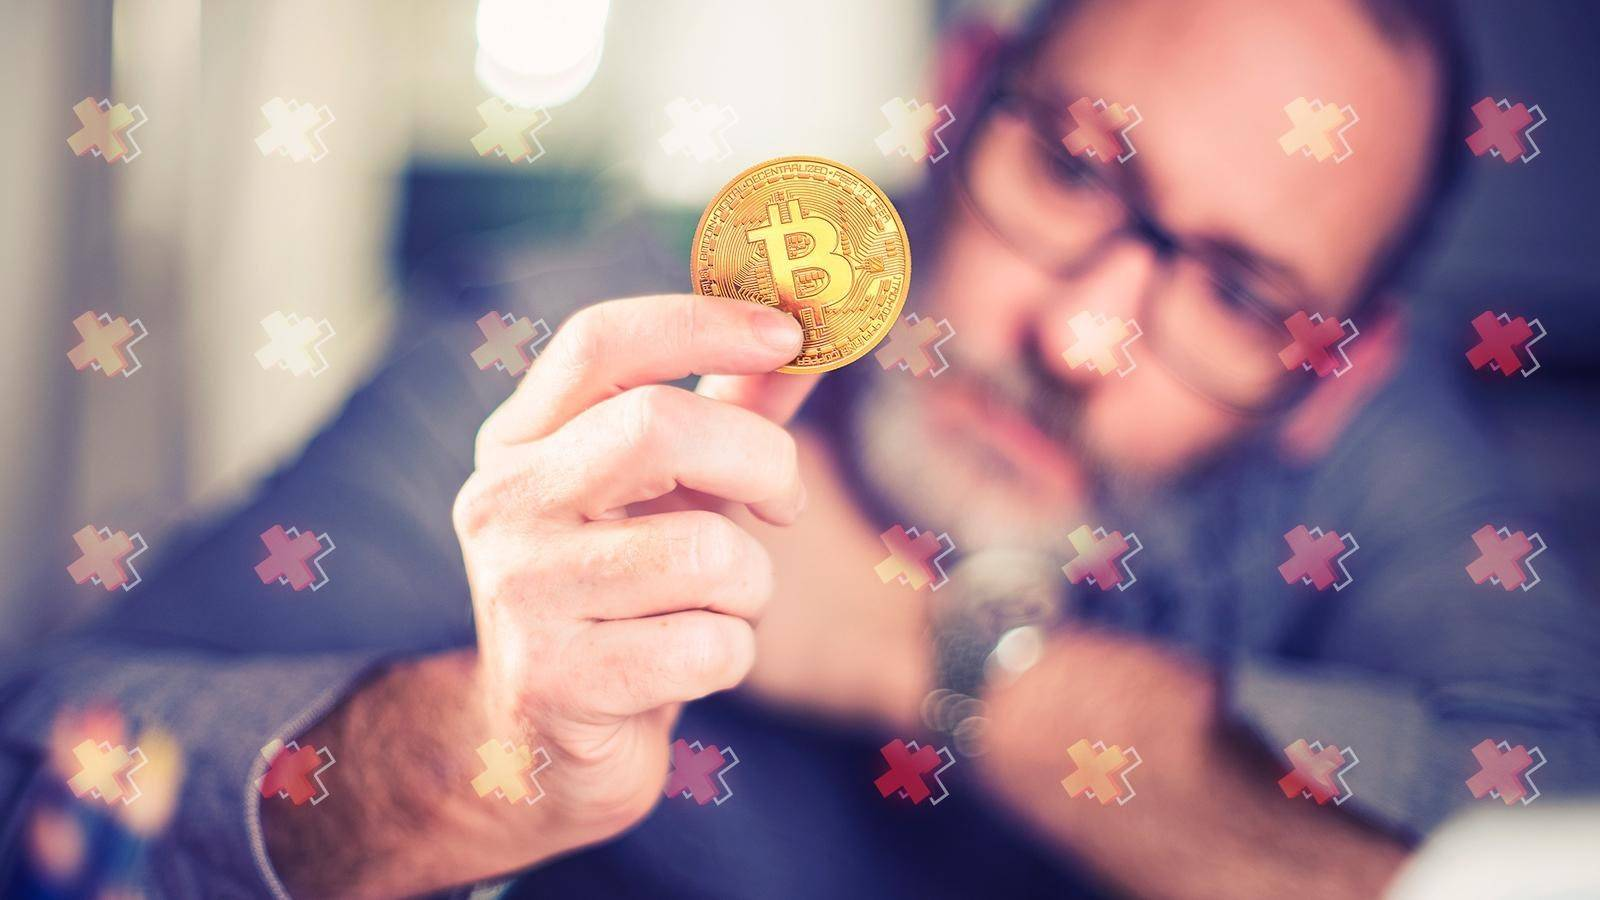 a man with a bitcoin coin